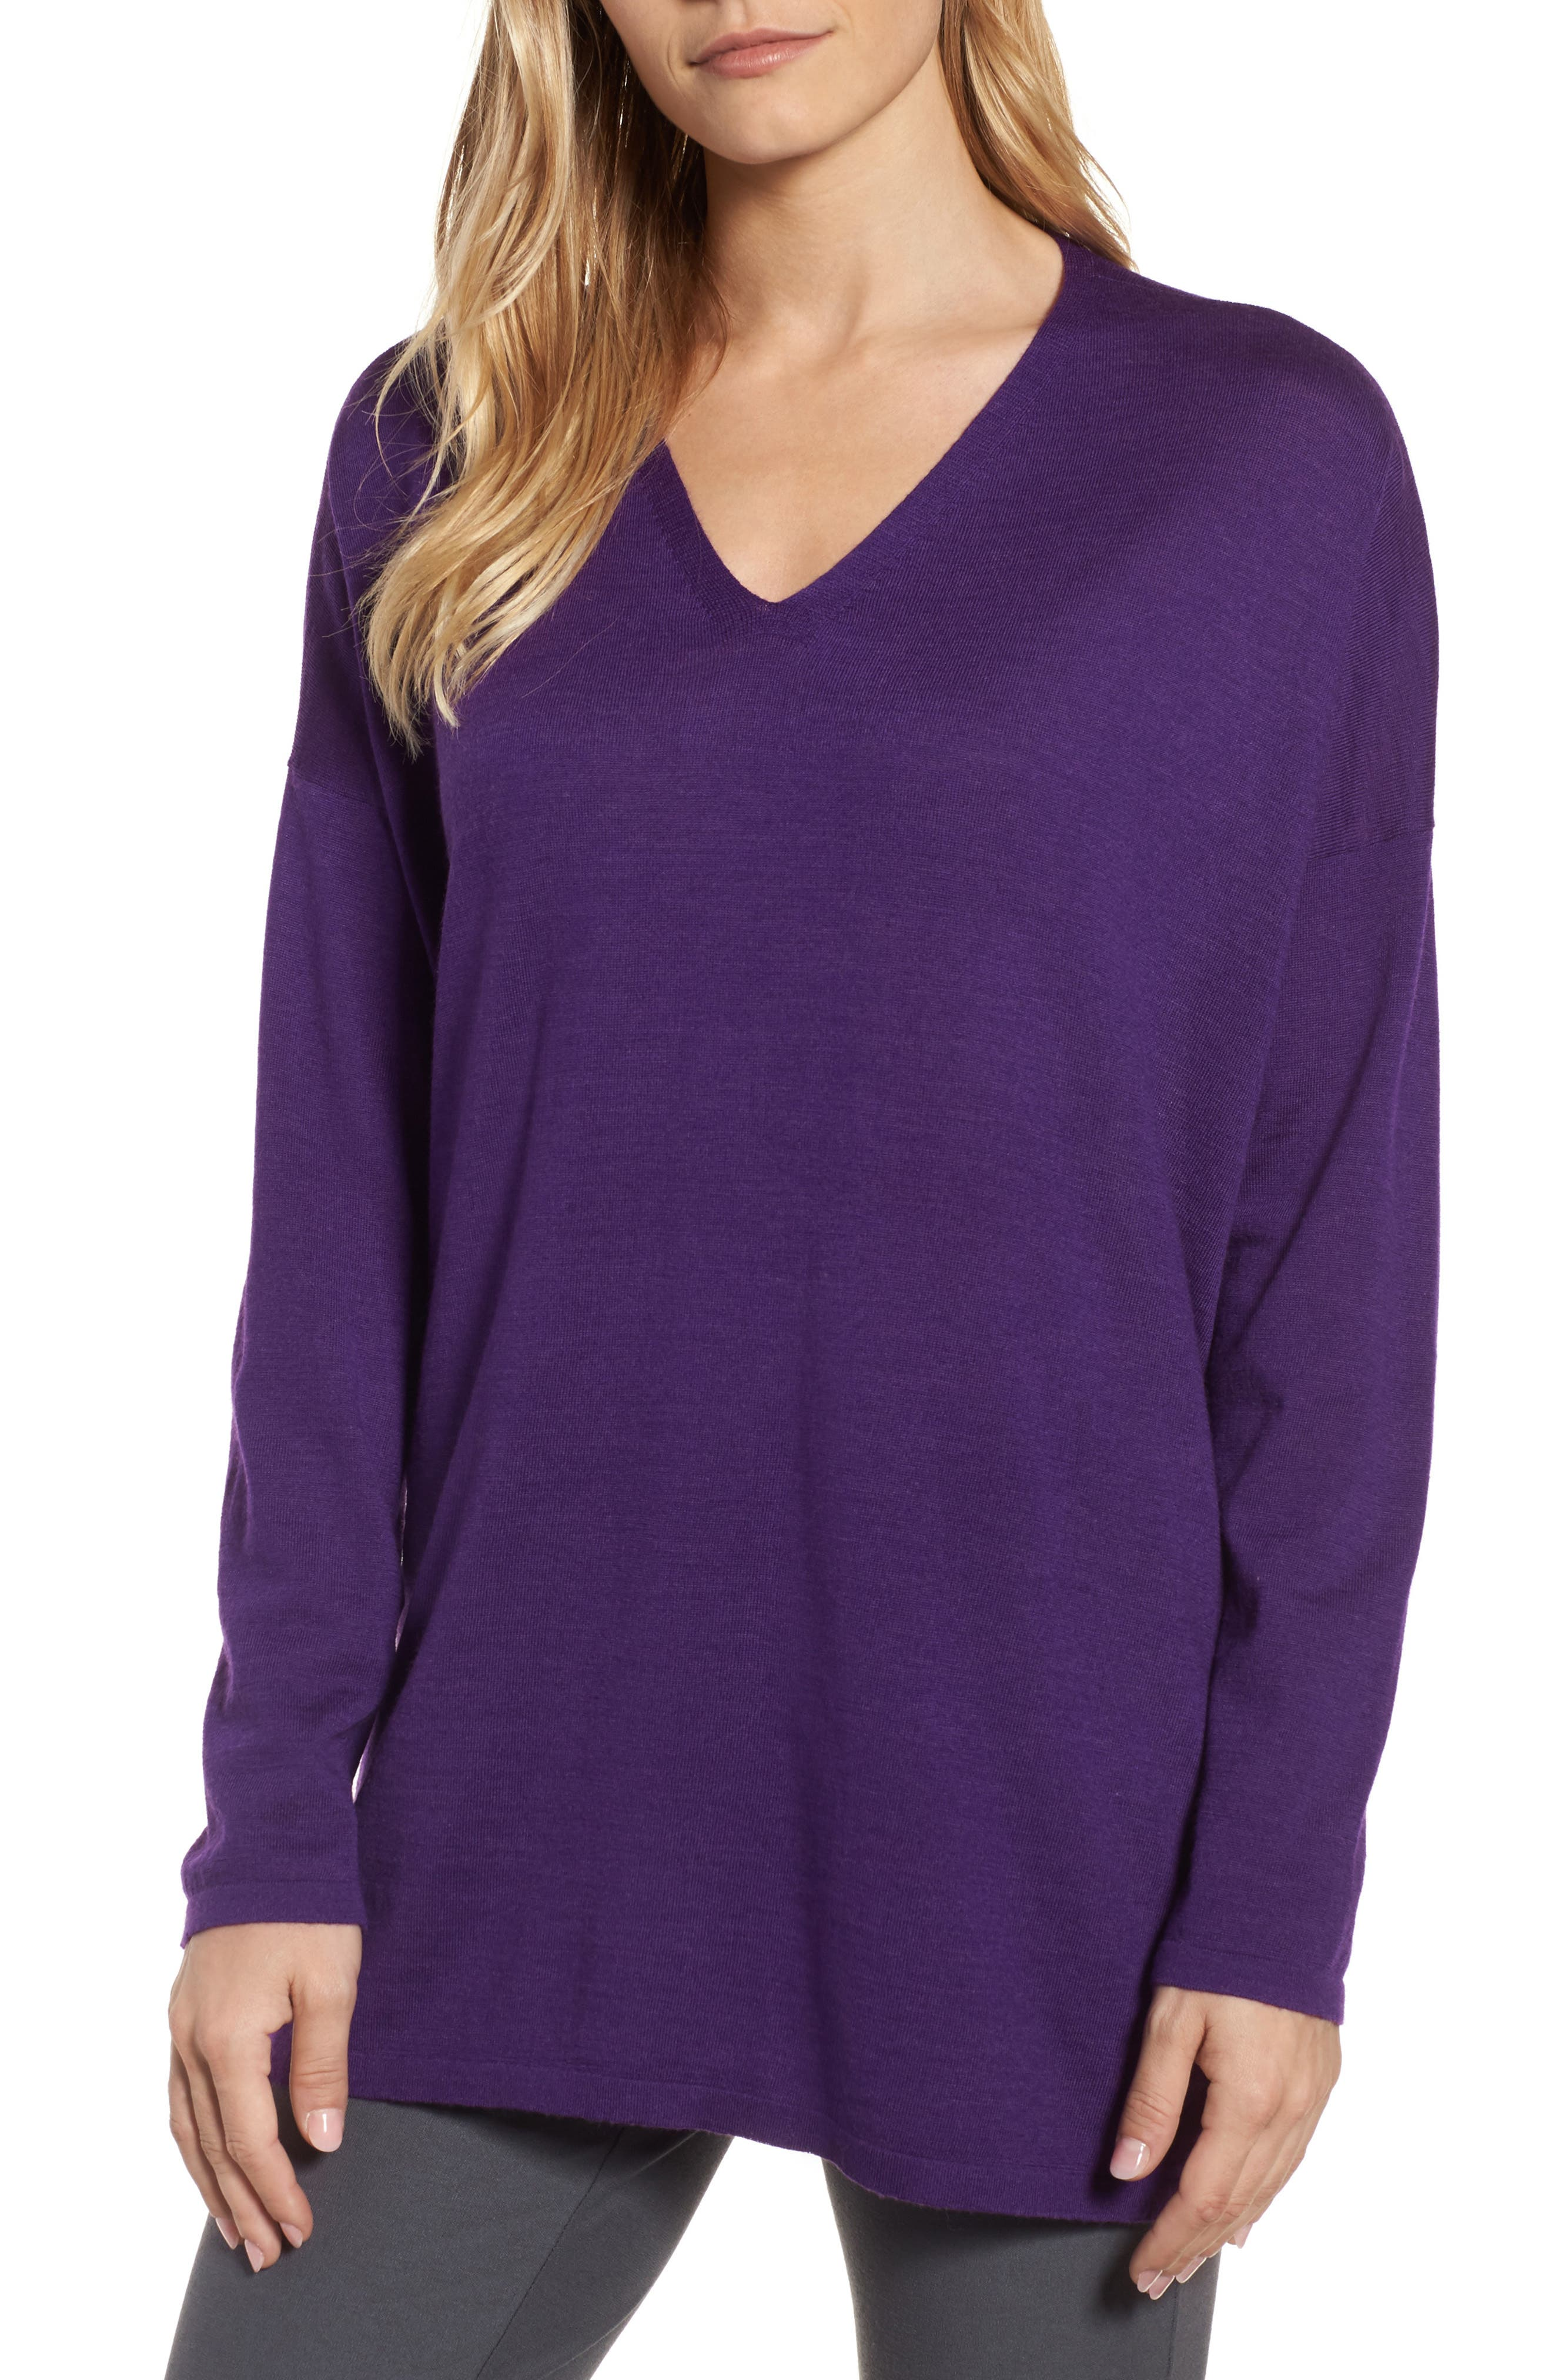 Eileen Fisher Merino Wool Tunic Sweater